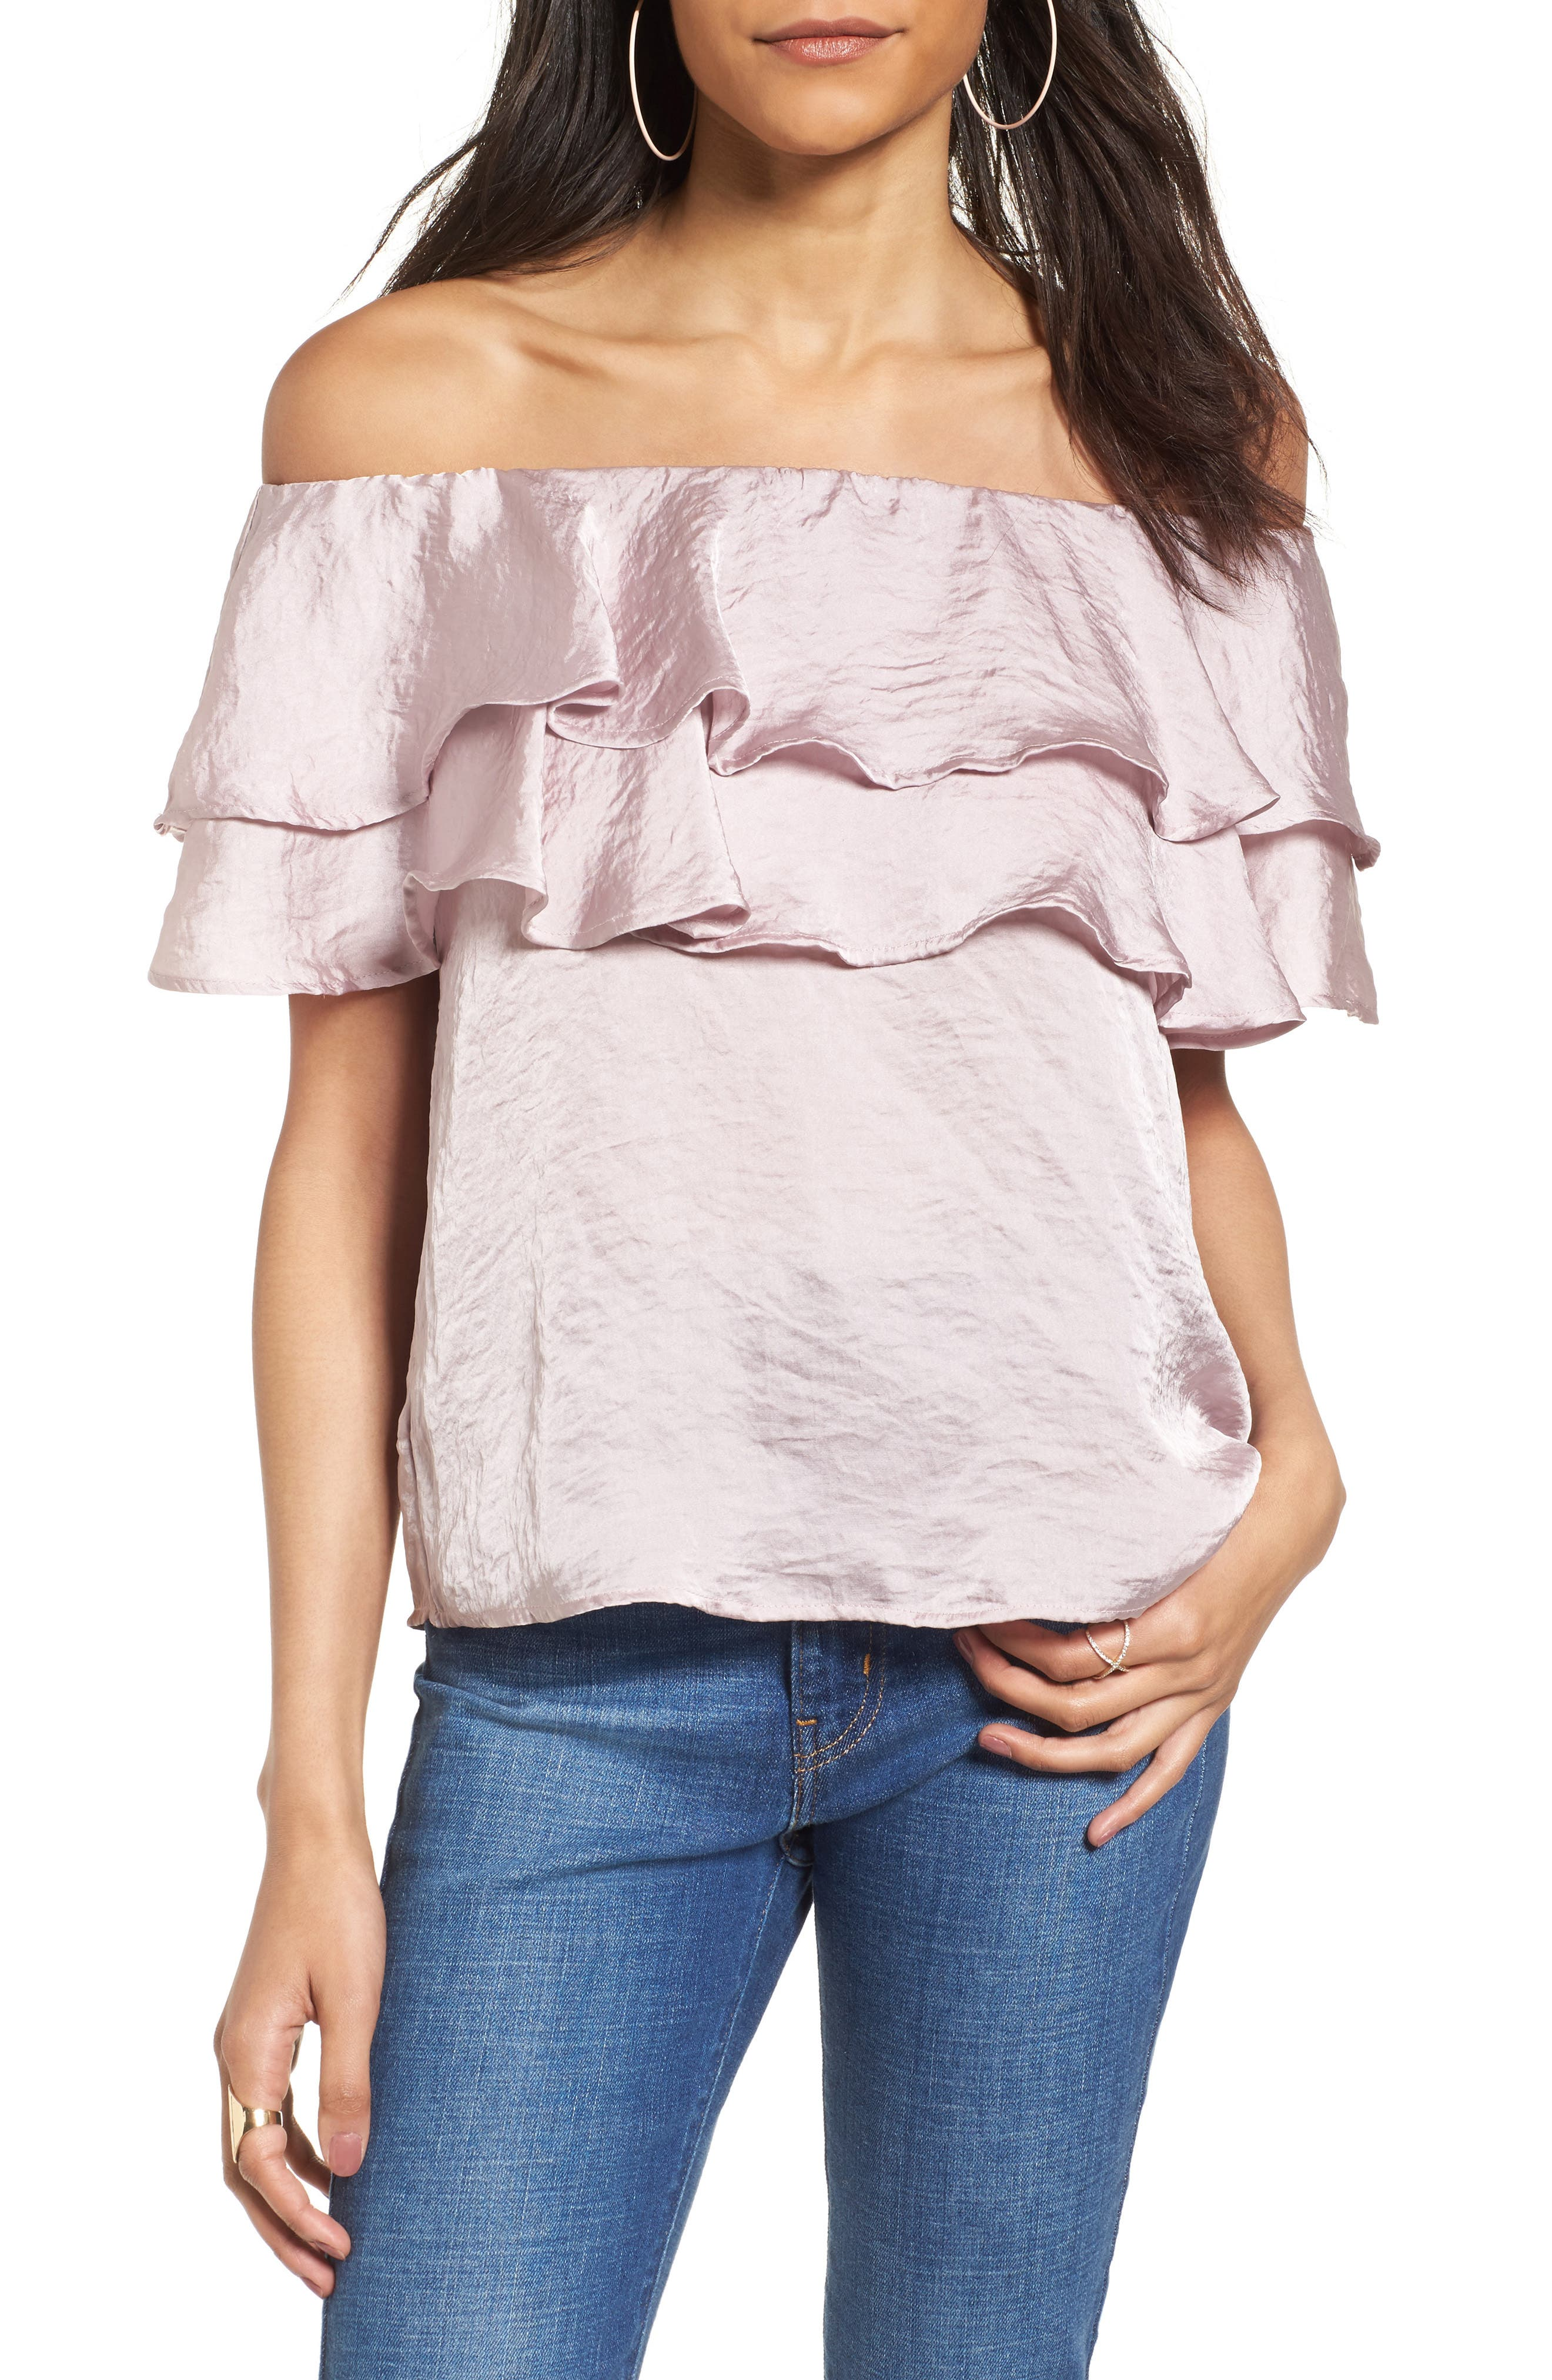 Alternate Image 1 Selected - BP. Ruffle Satin Off the Shoulder Top